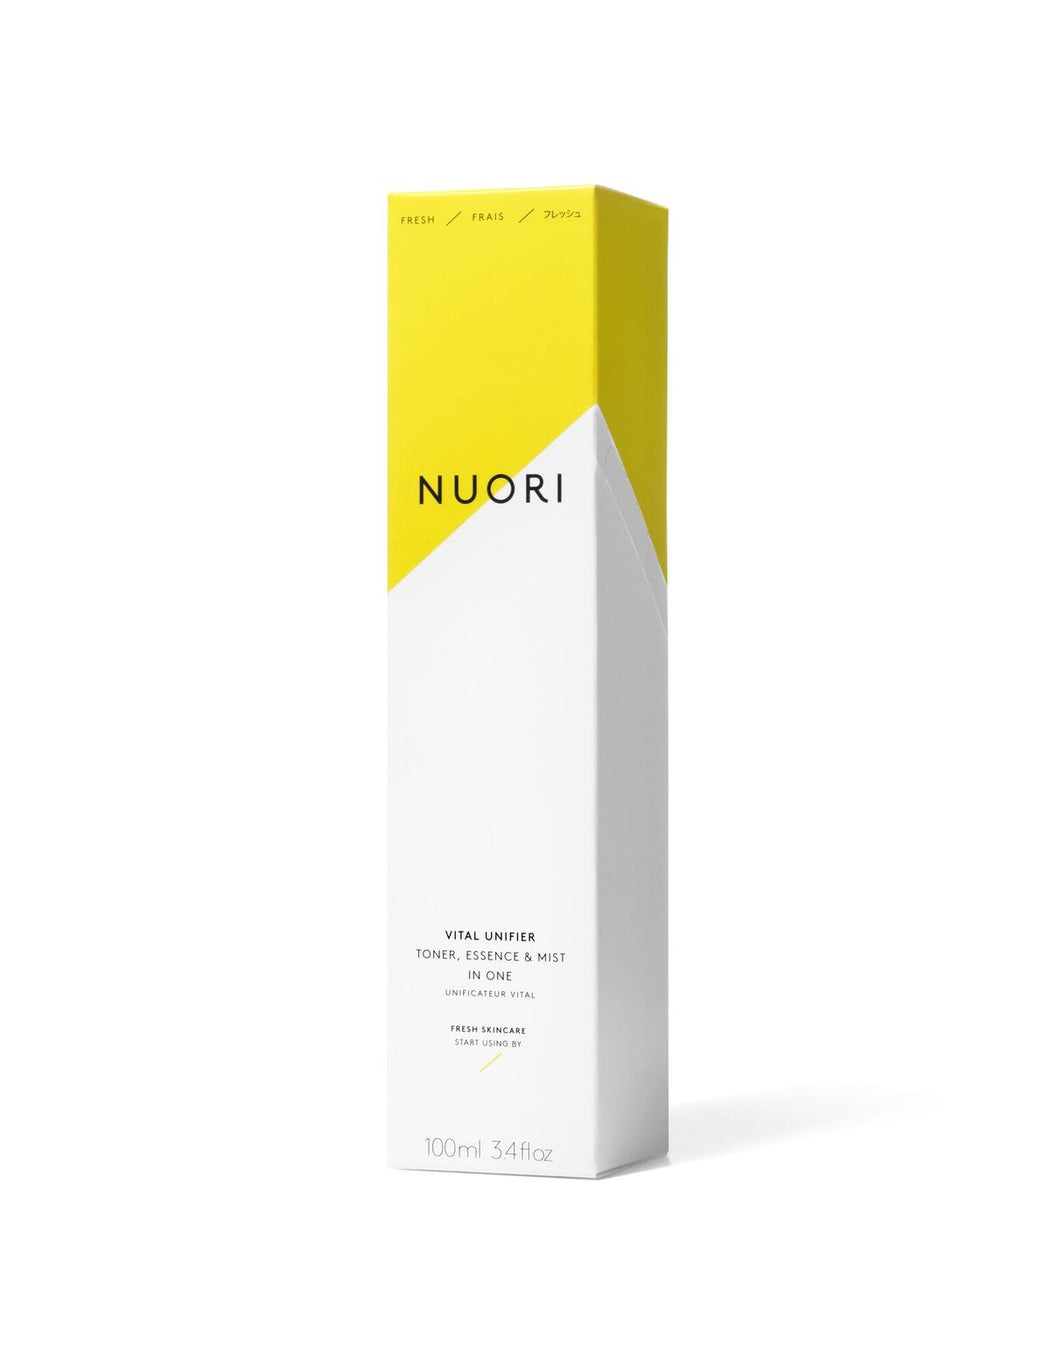 NUORI Vital Unifier 100ml